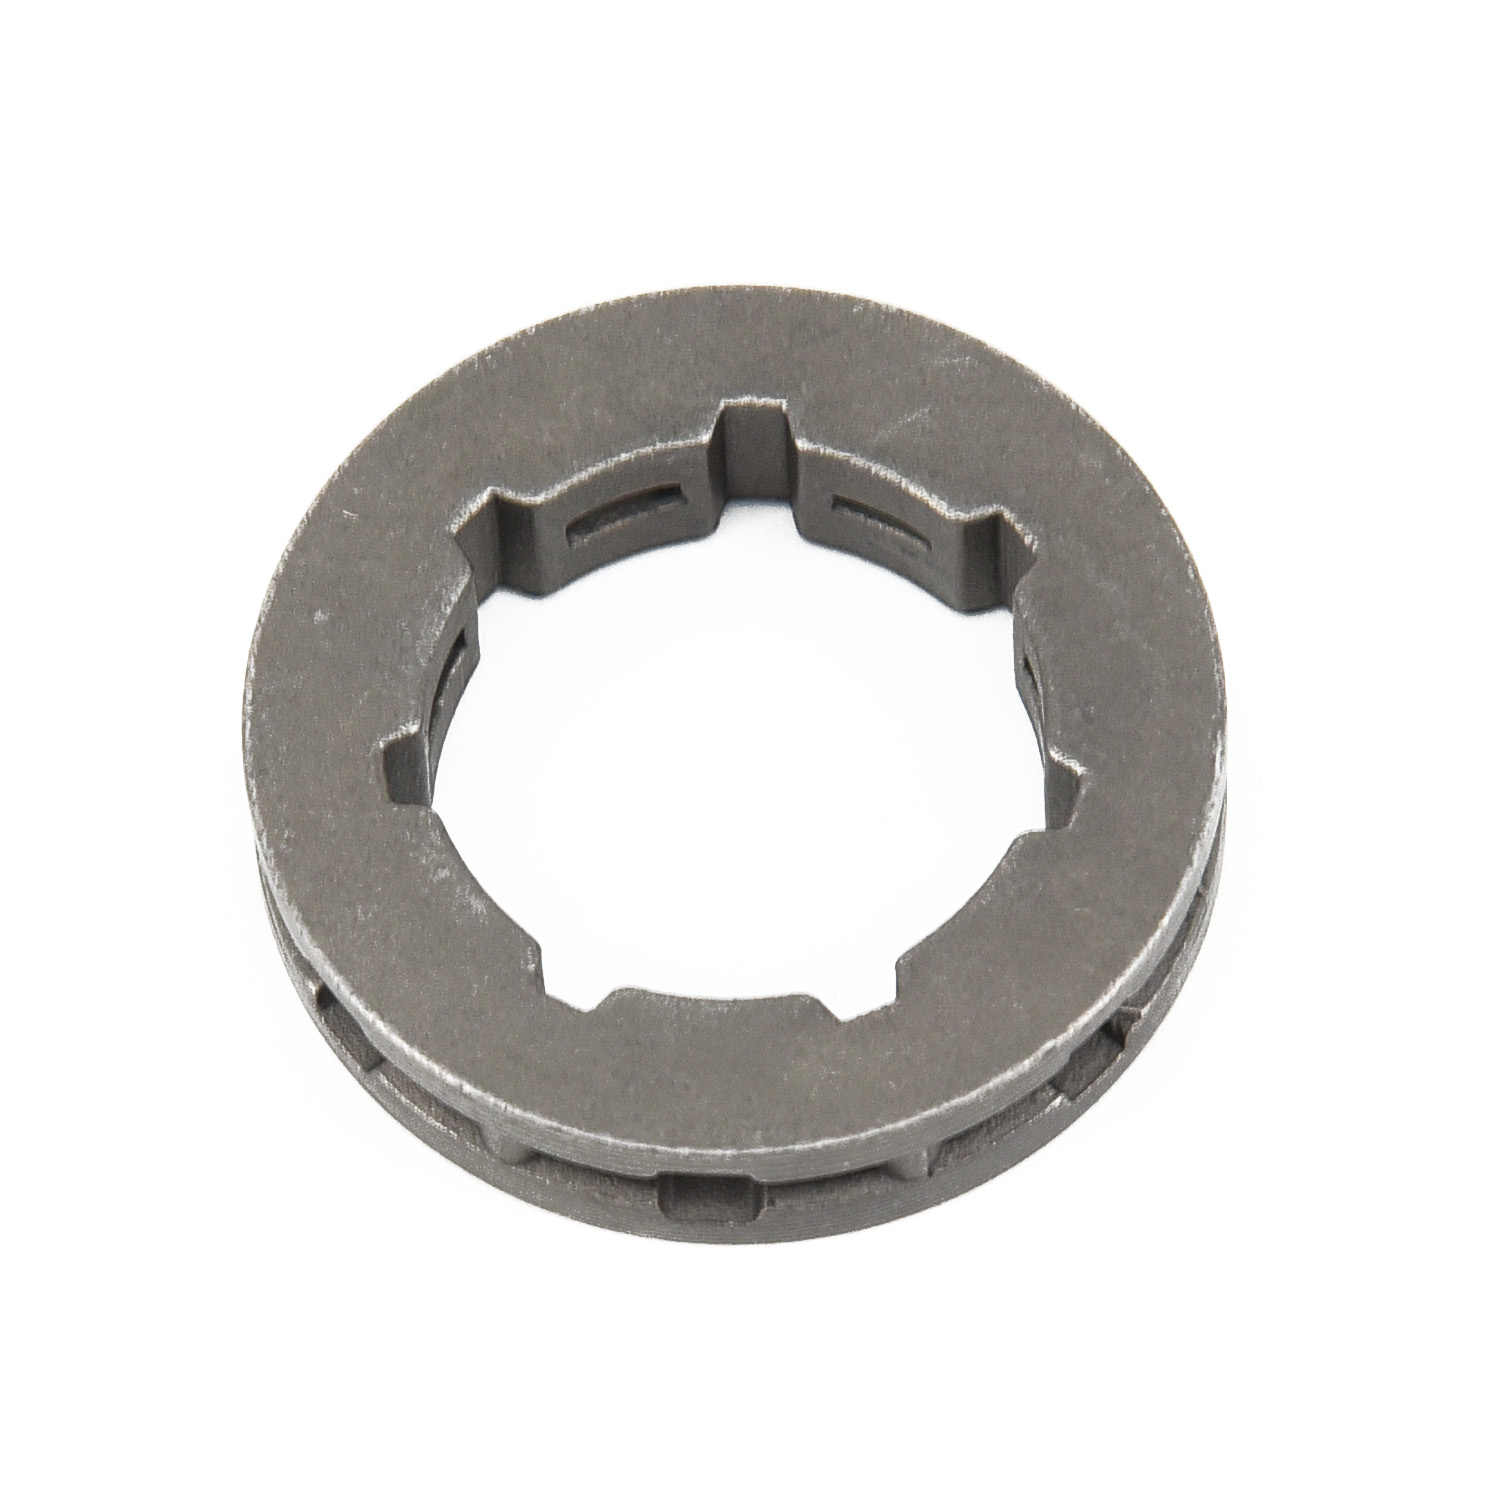 3/8 Inch Pitch 7T Tandwiel Velg Voor Stihl MS720 064 066 MS640 MS660 084 088